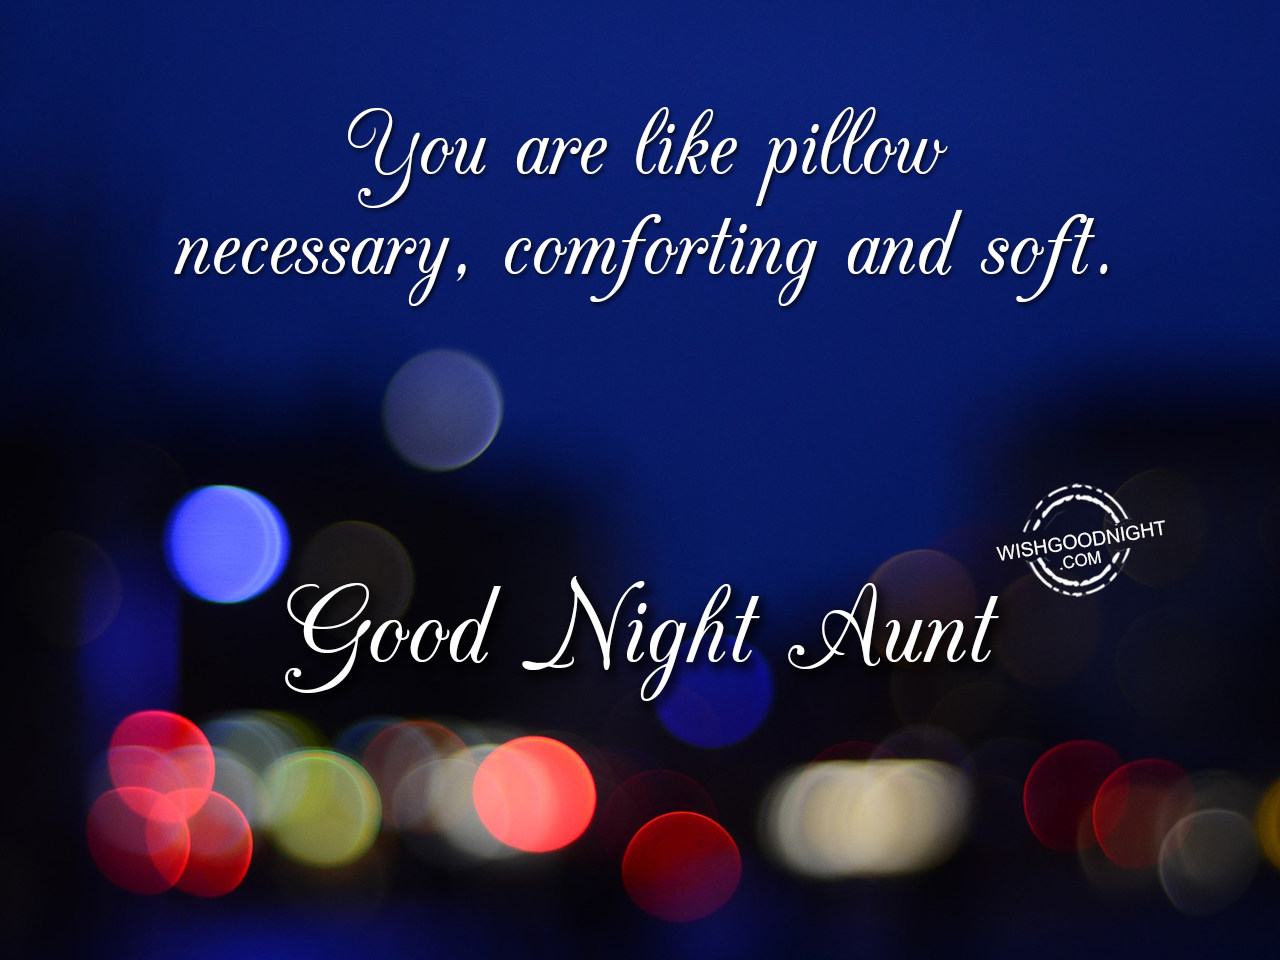 Good Night Wishes For Aunt Good Night Pictures Wishgoodnight